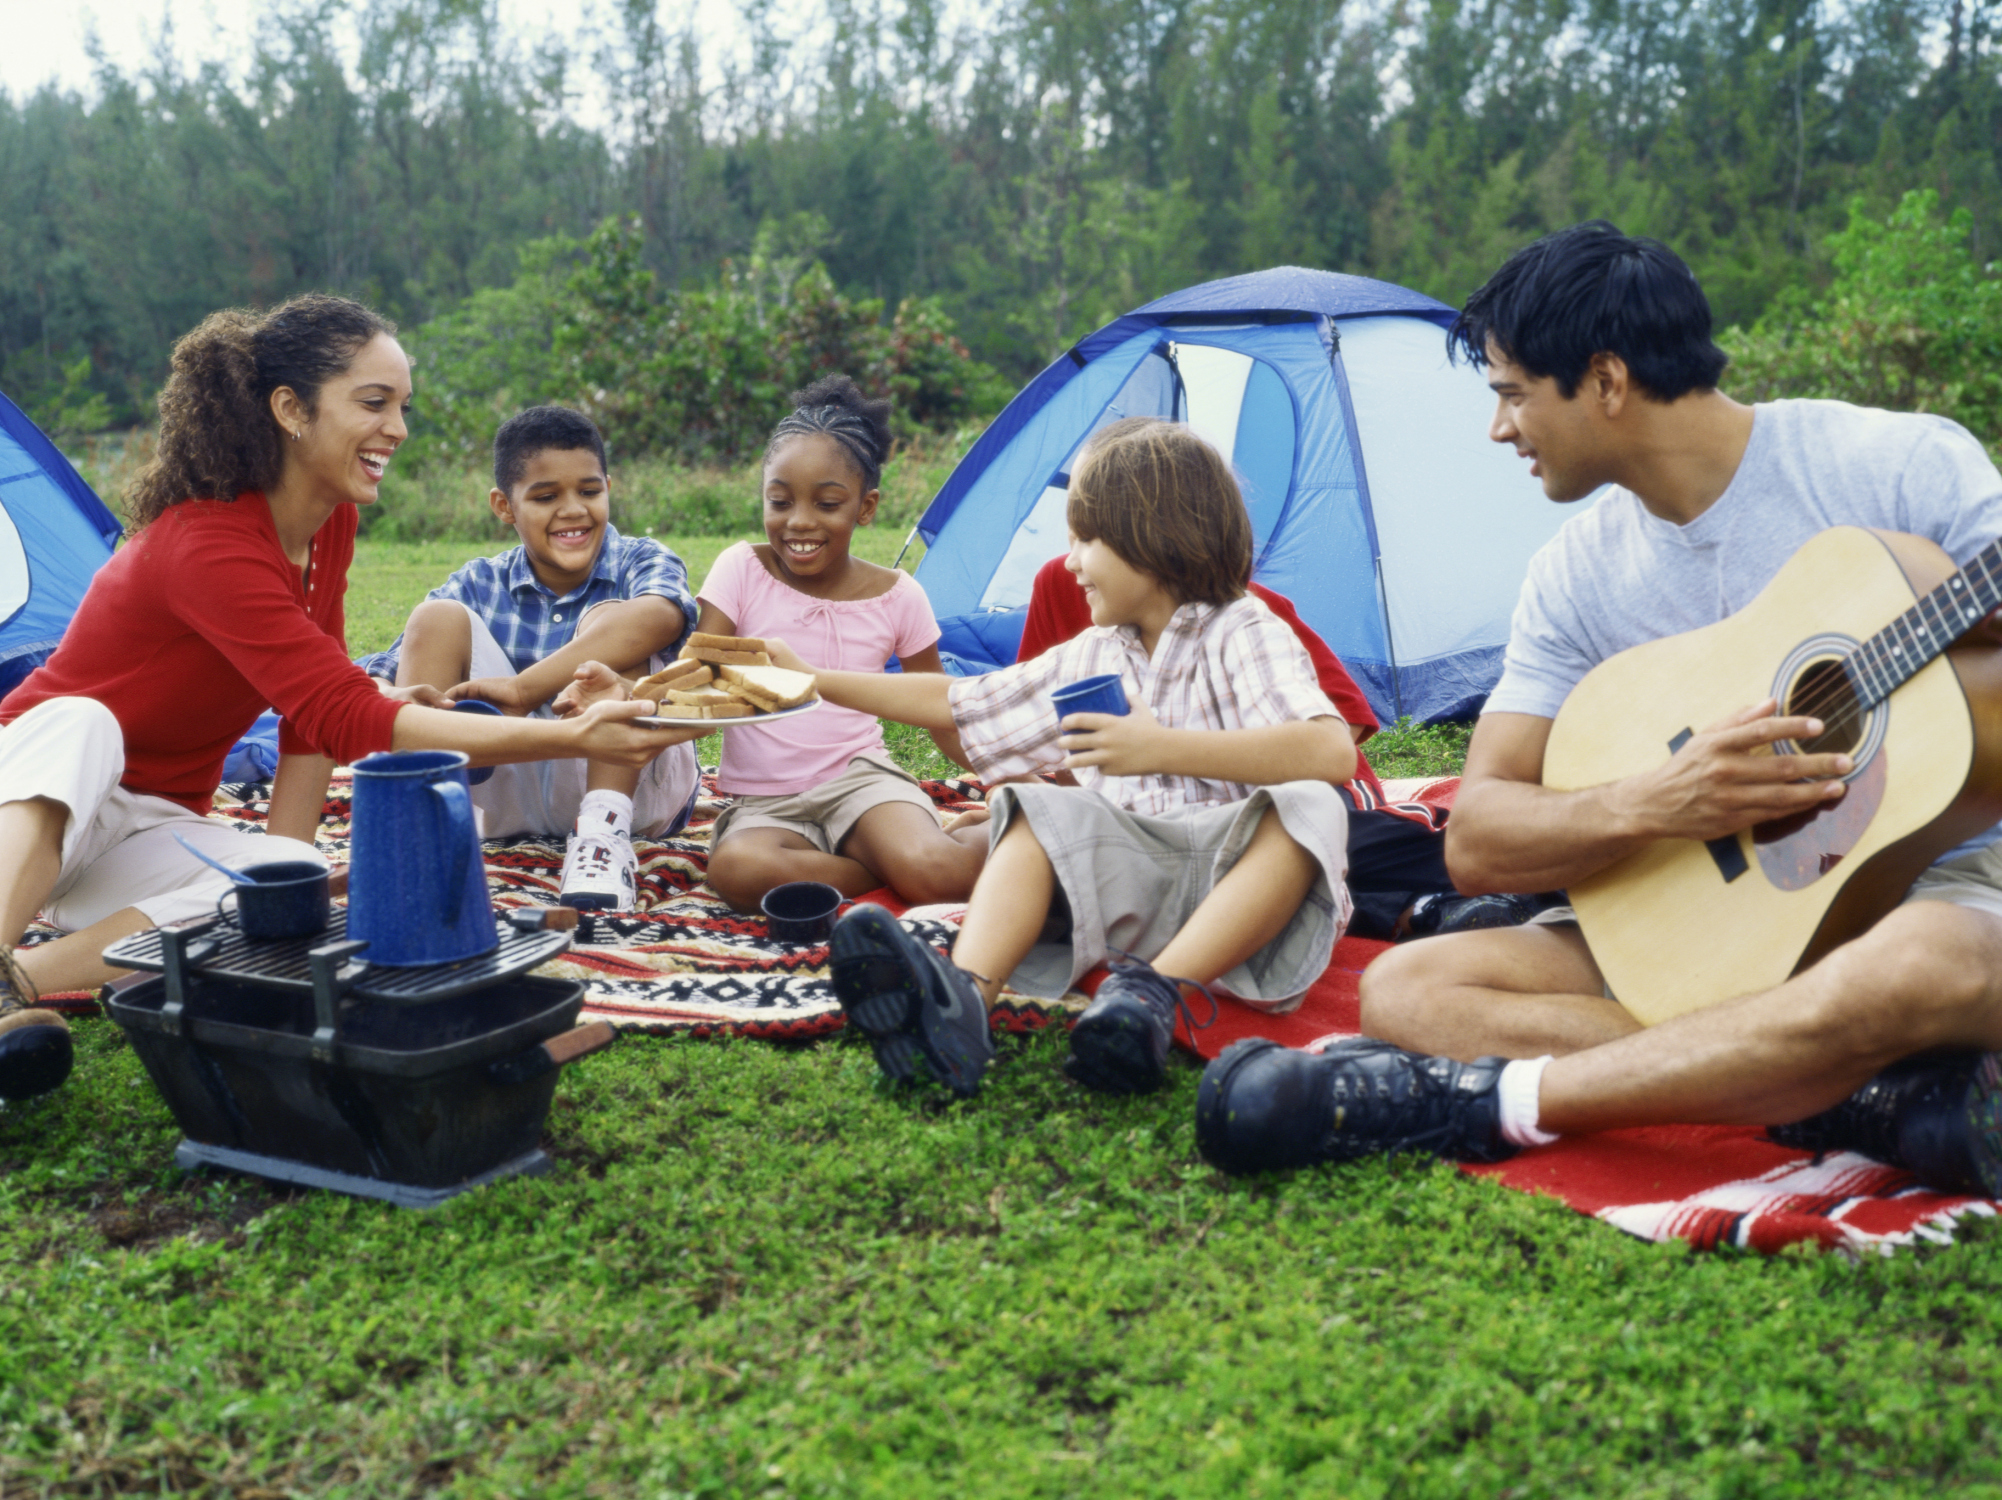 family with children tent camping